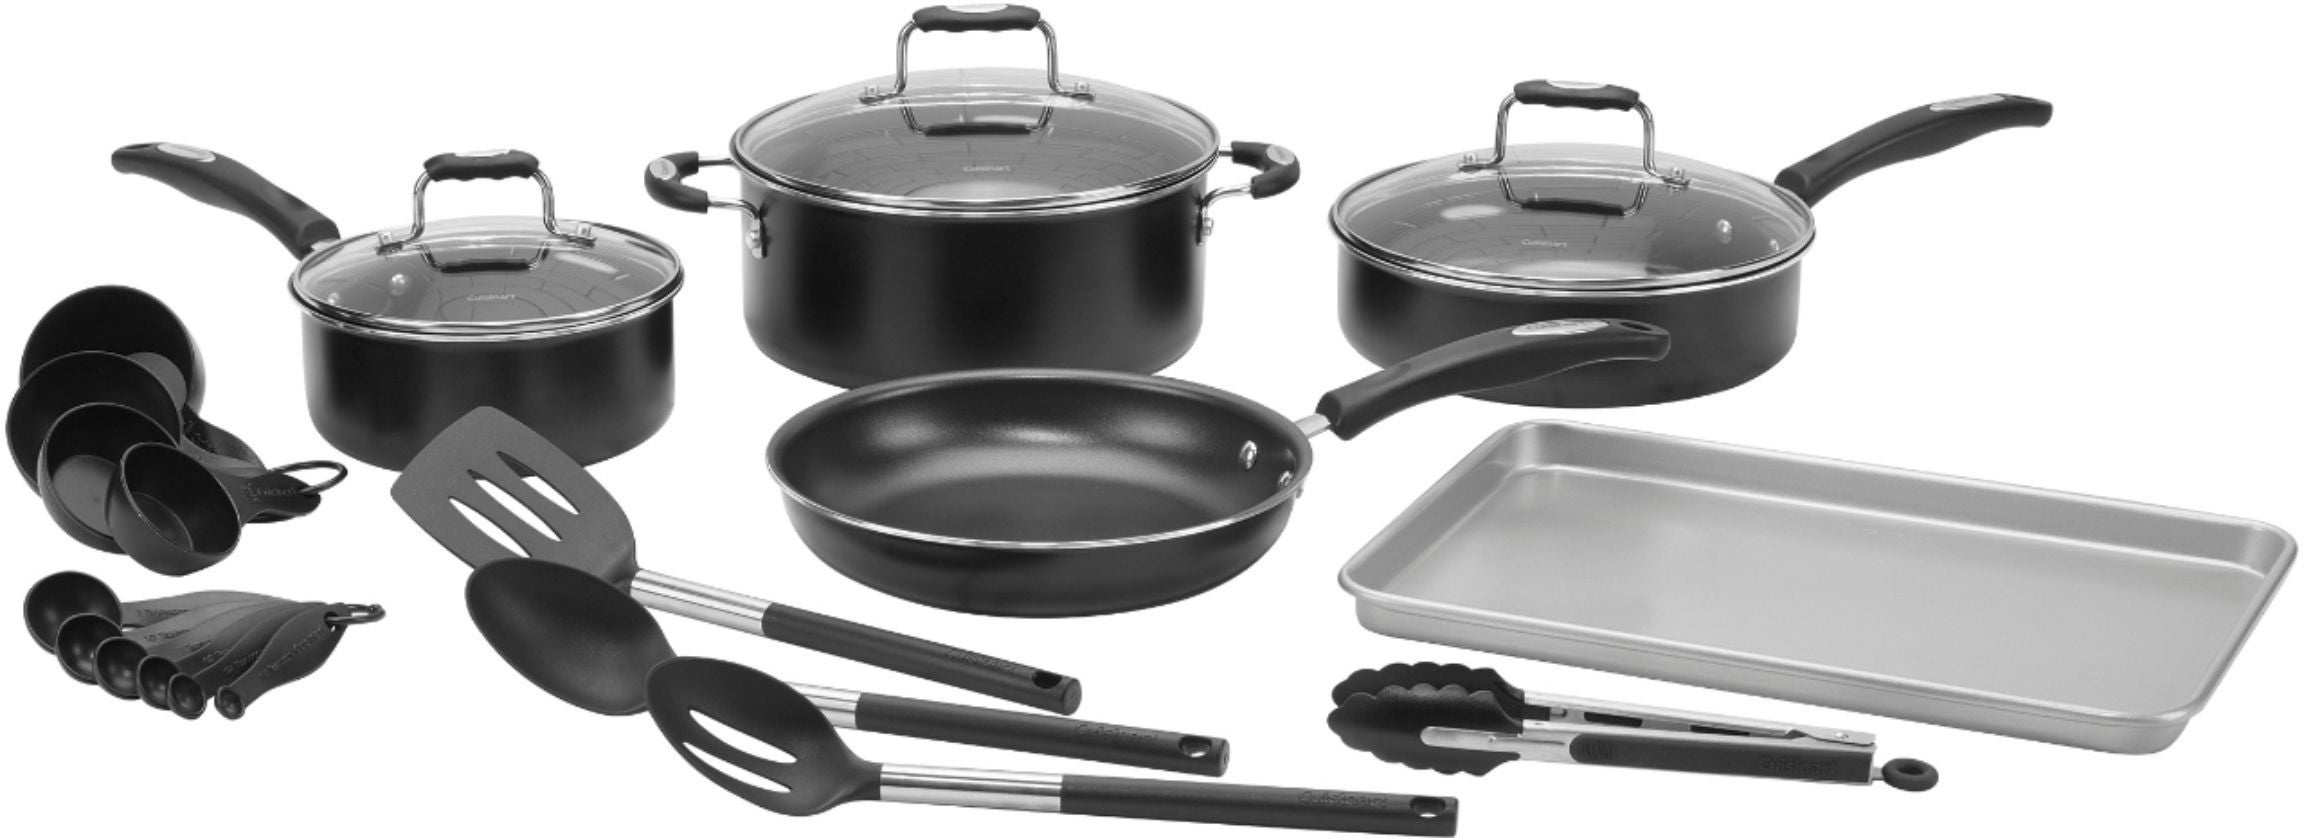 Complete Chef 22 Piece Cookware Set